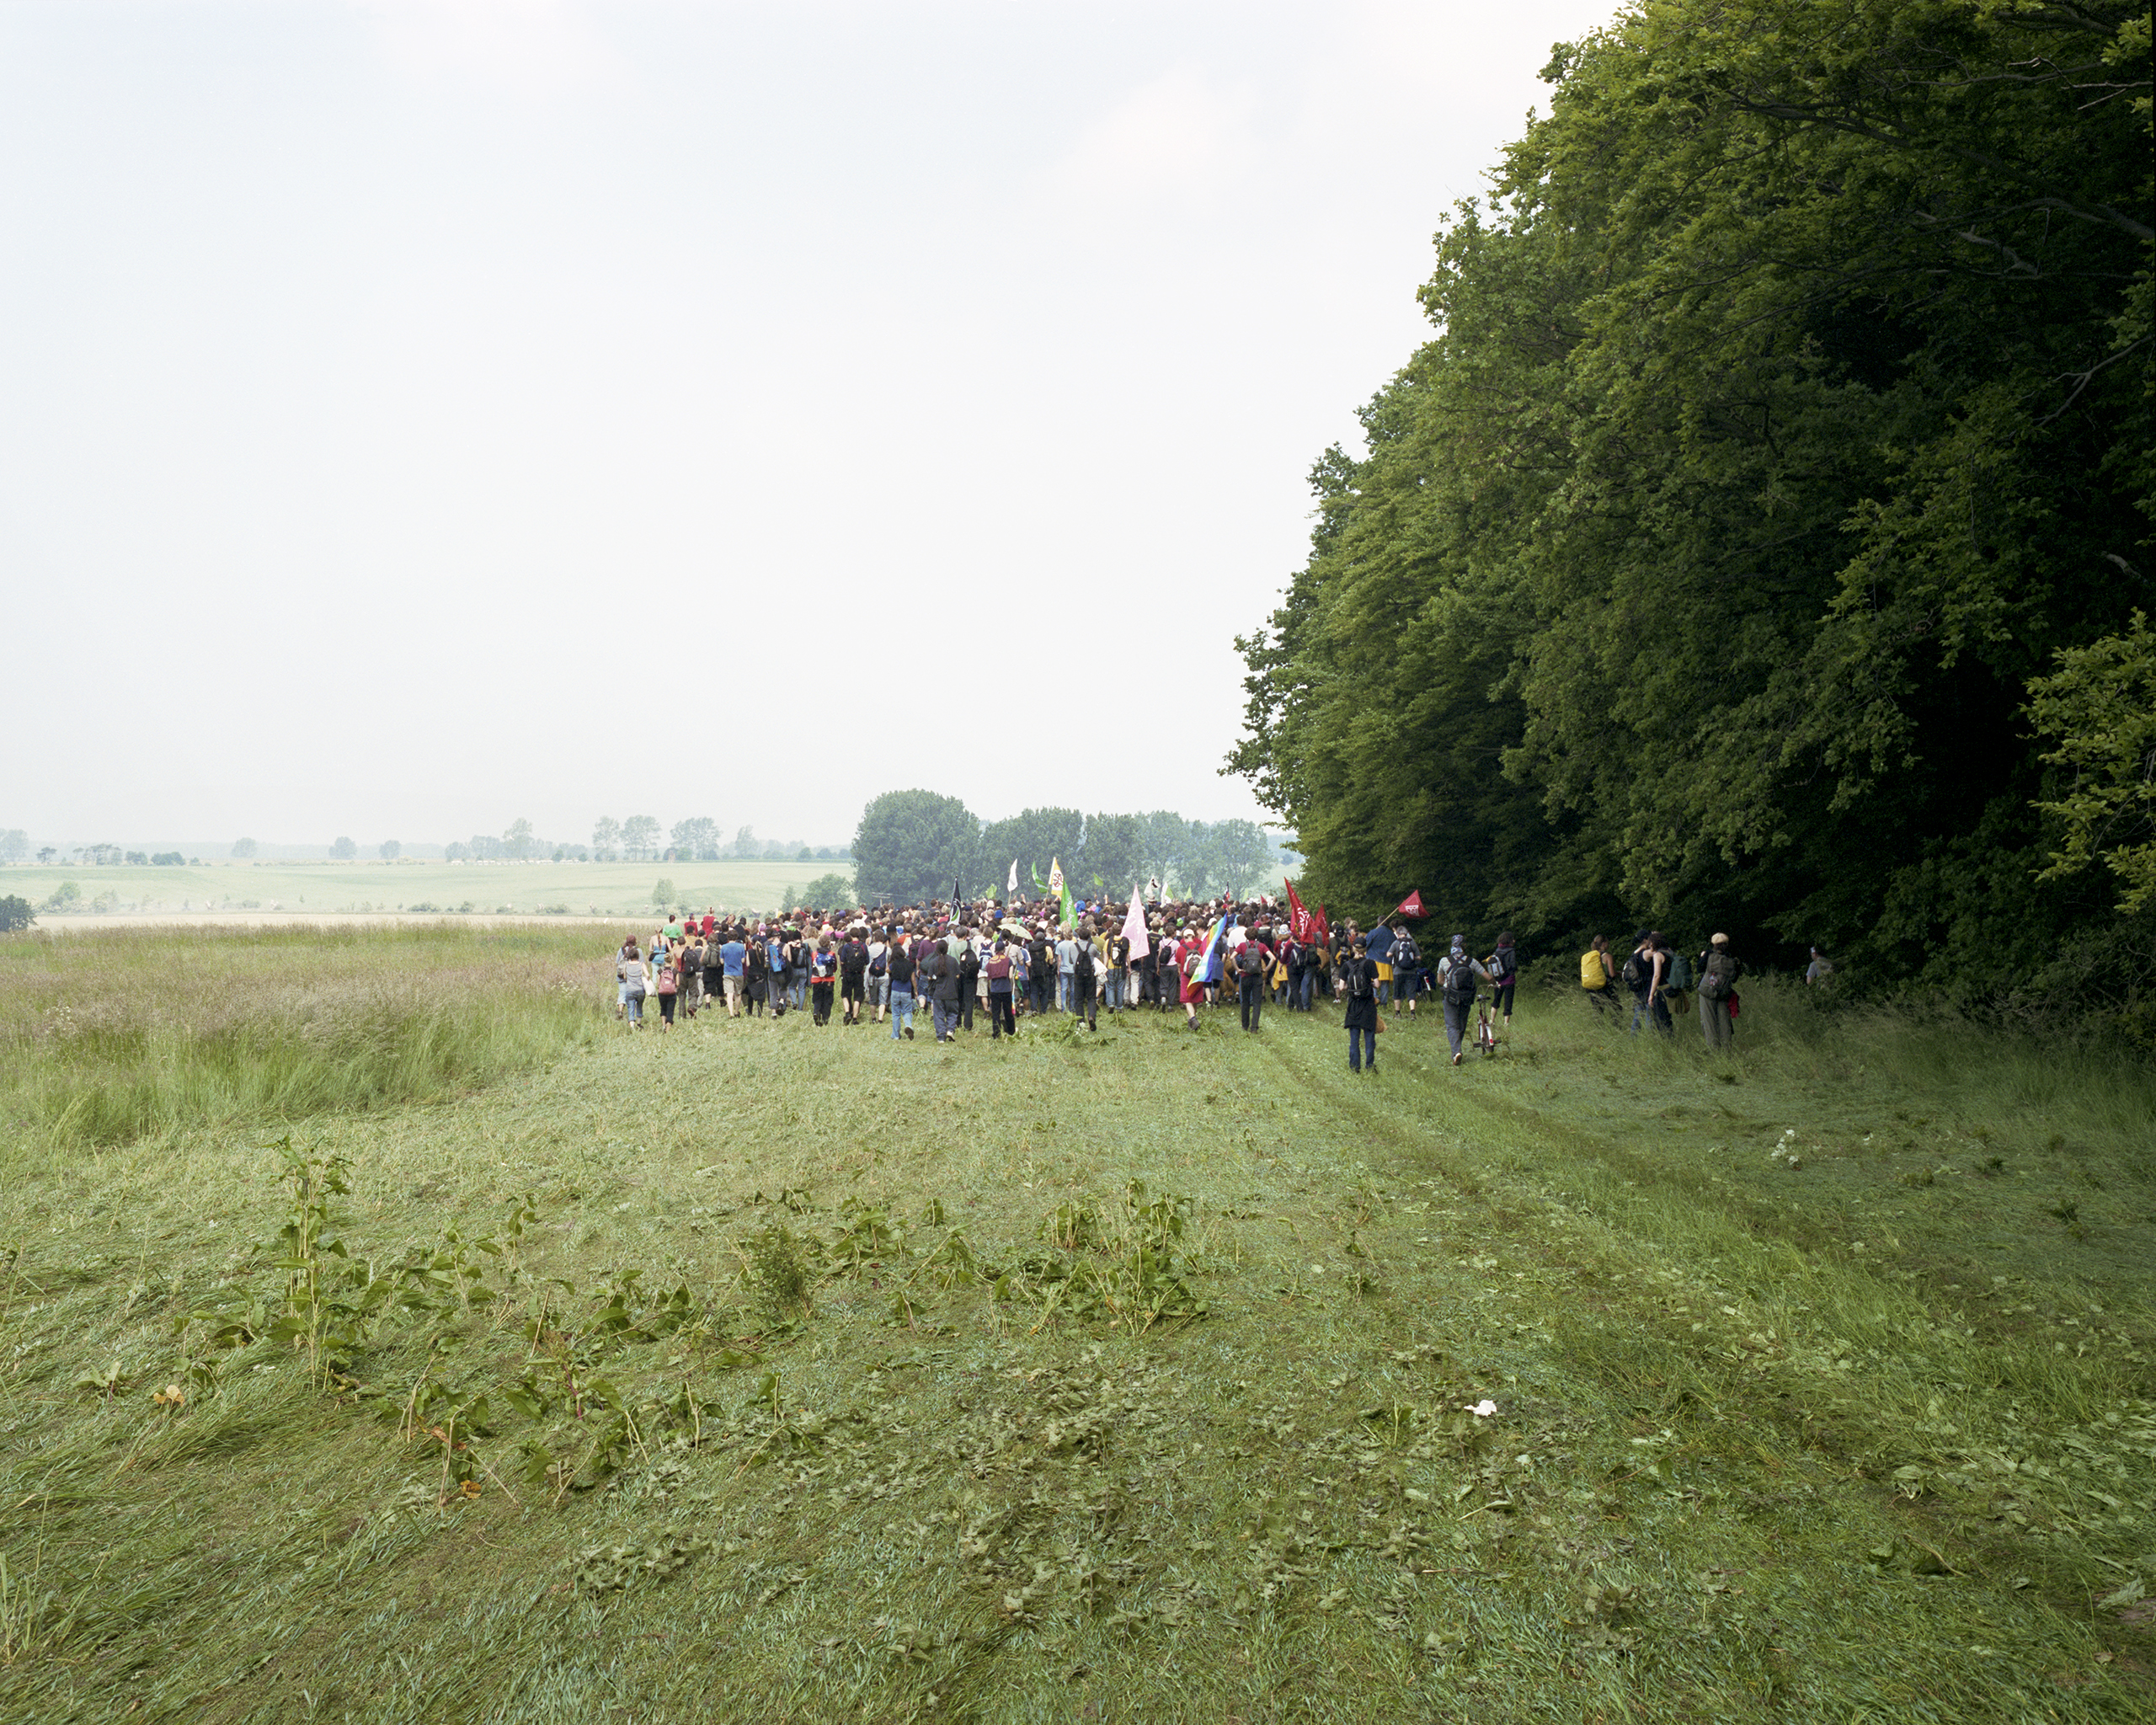 A crowd protests the G8 Summit in Heiligendamm, Germany.                               2007